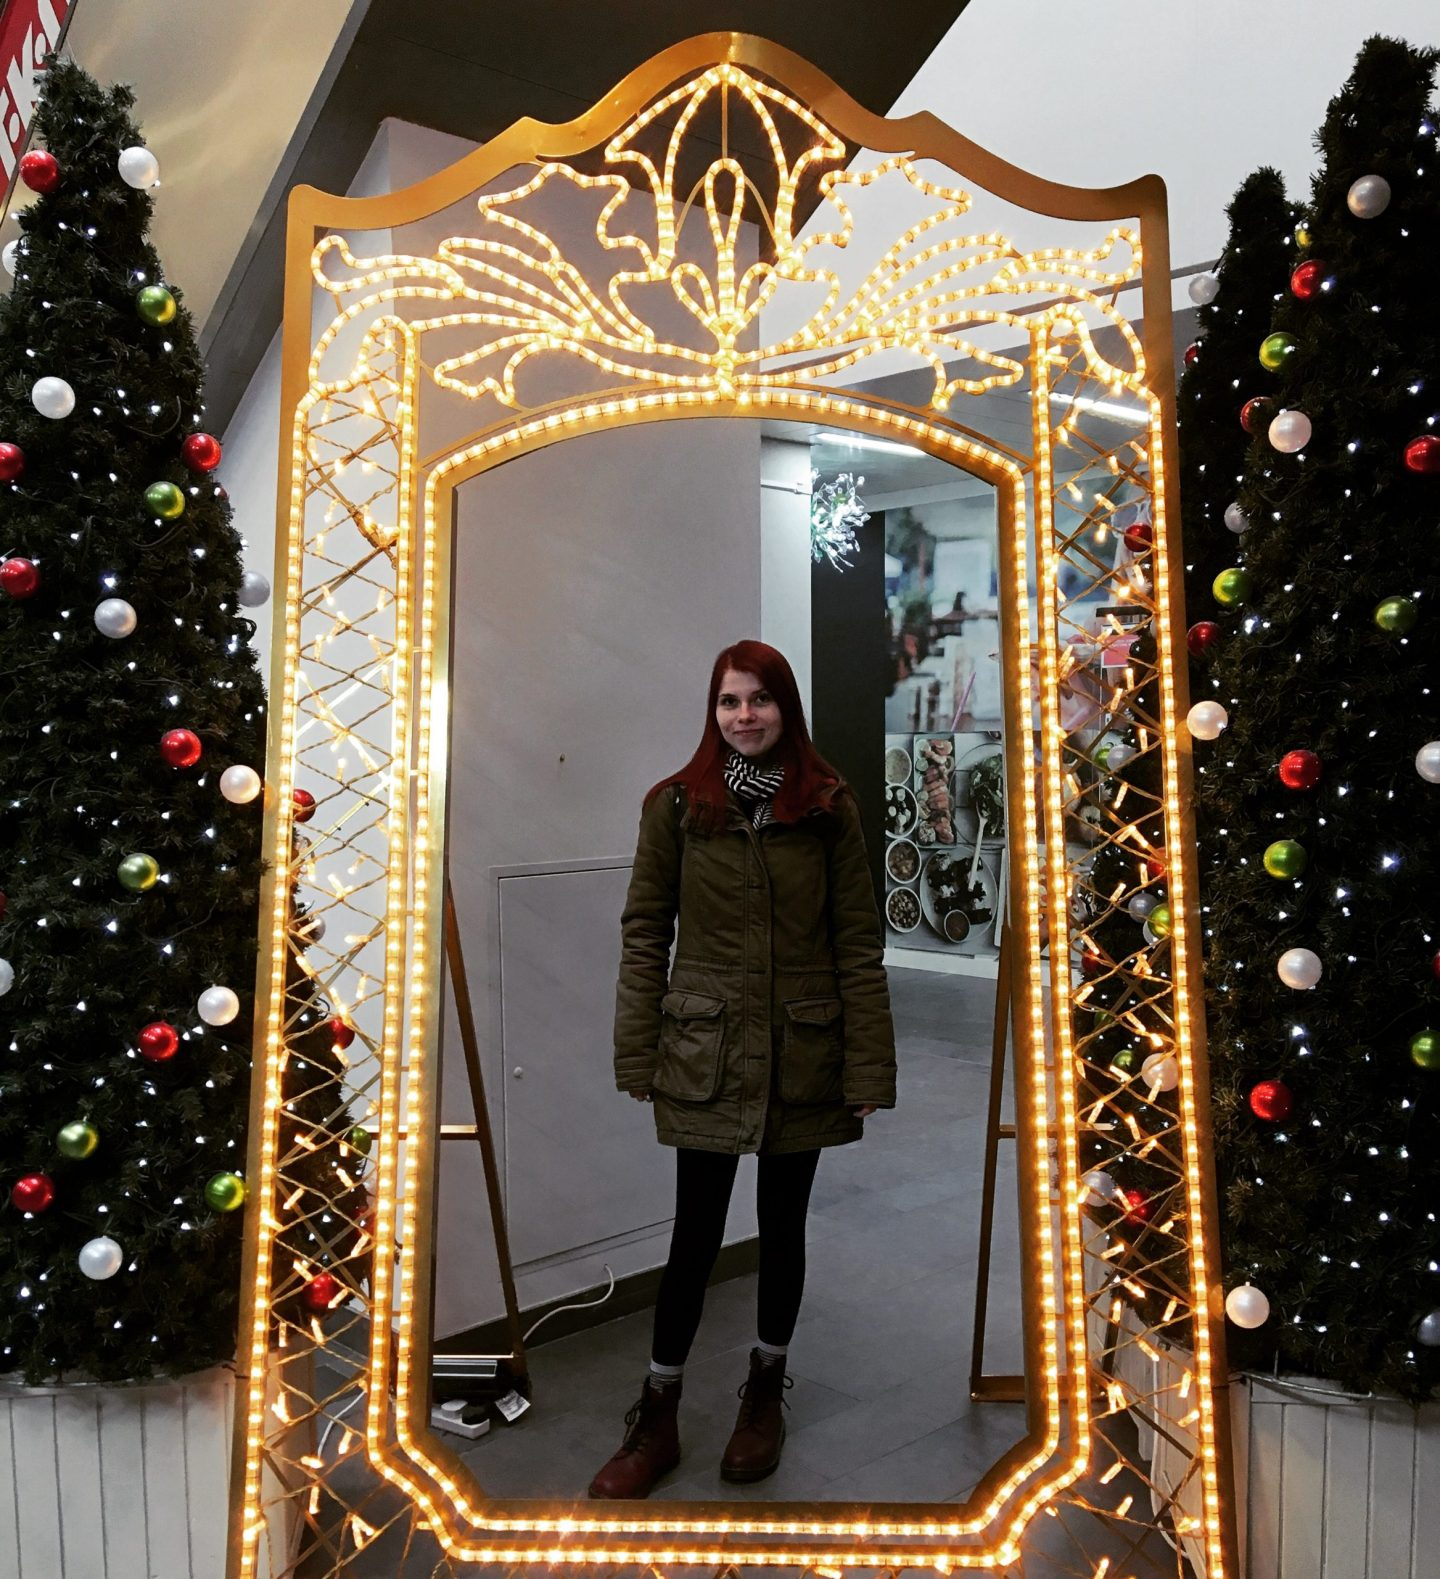 A photo of a large lit up mirror, maybe 6 ft tall. You can stand behind it to take your photo. I'm stood there with a green coat, read Dr Marten boots and a hat on.